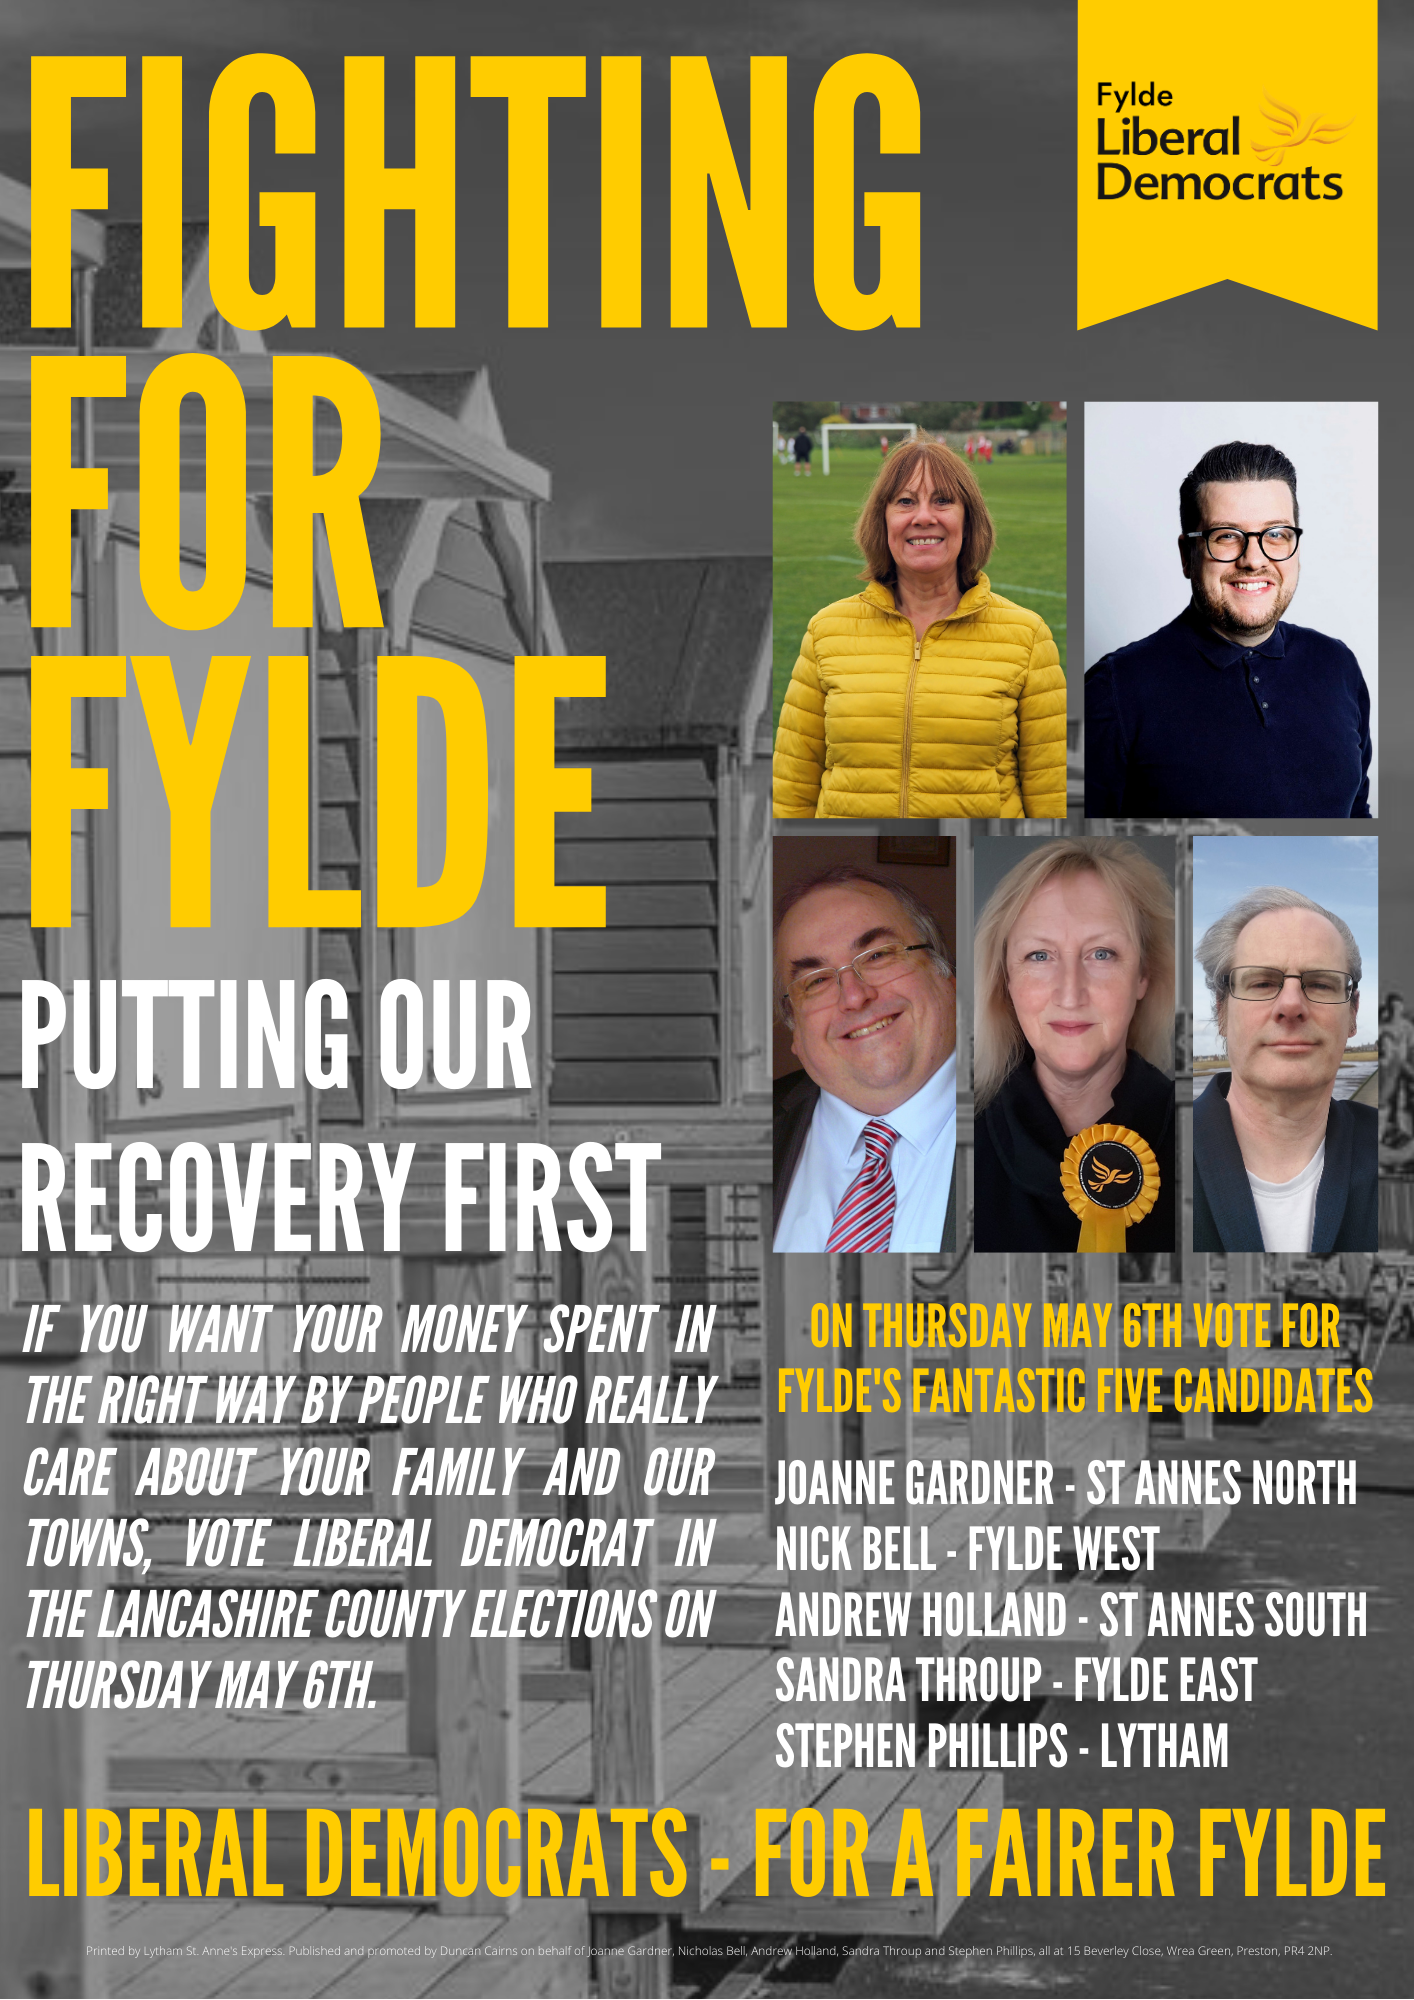 Lib Dems for a Fairer Fylde!